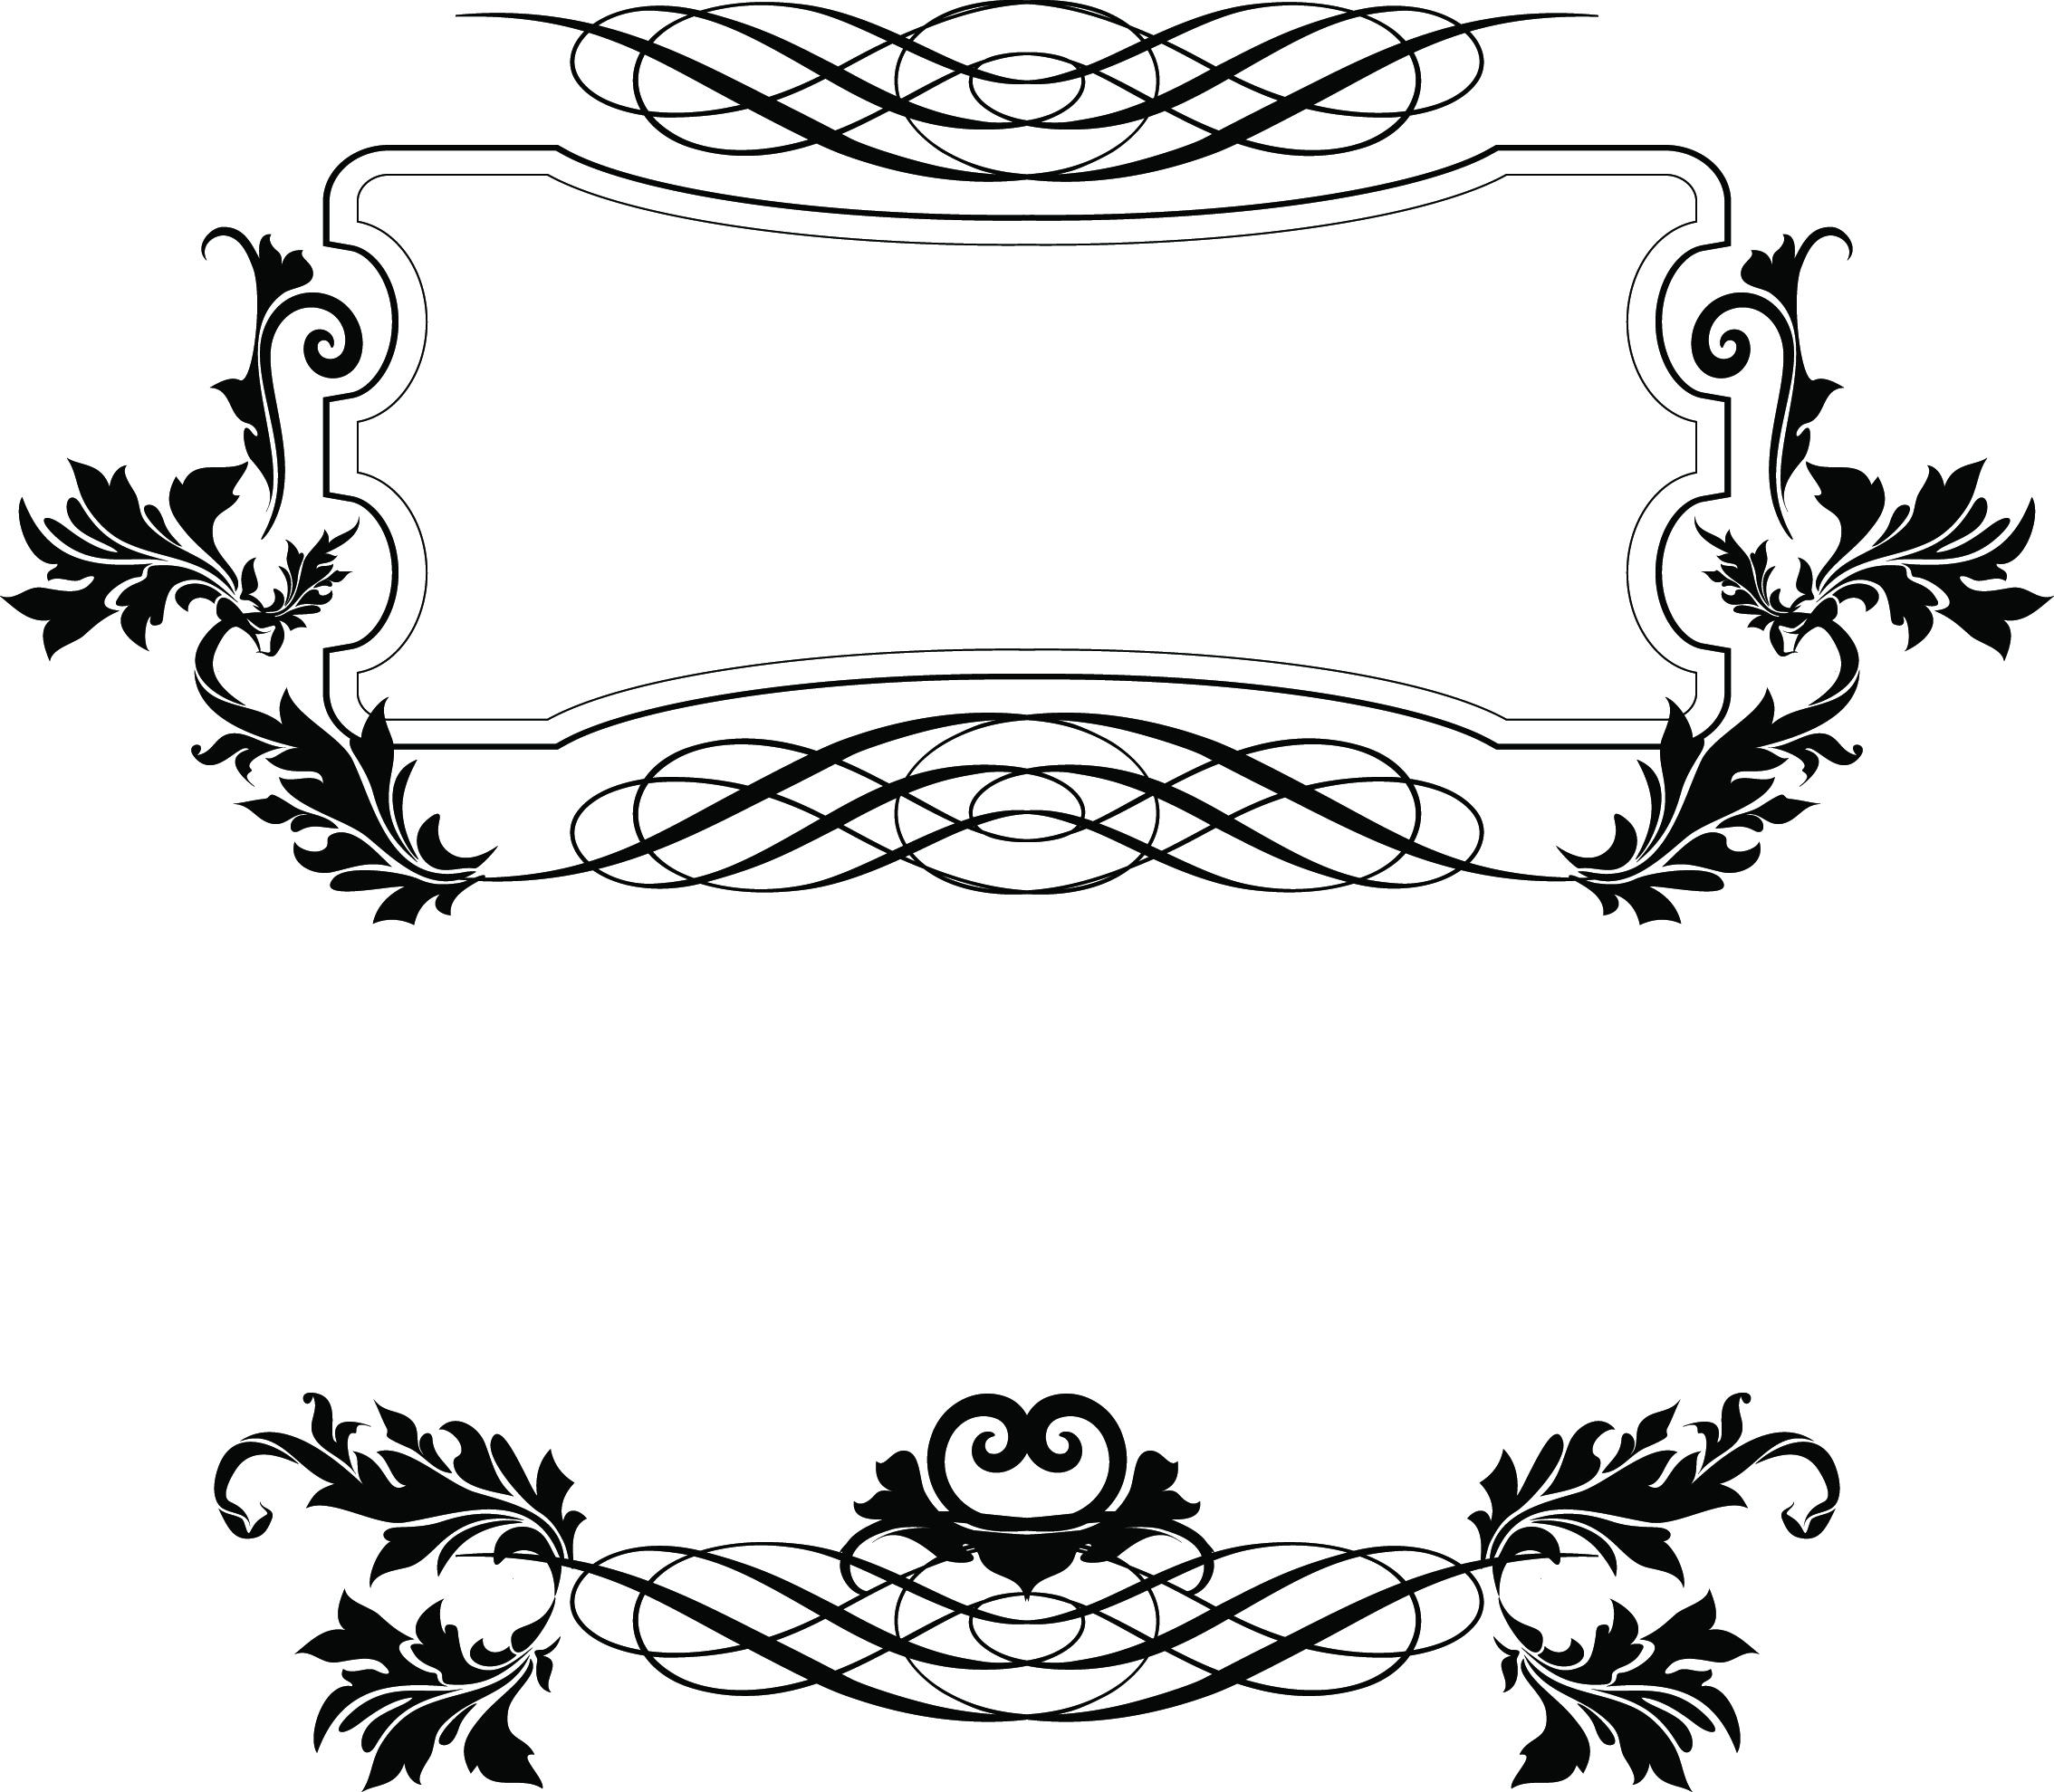 9 Fancy Frame Border Design Images Free Vector Decorative Borders